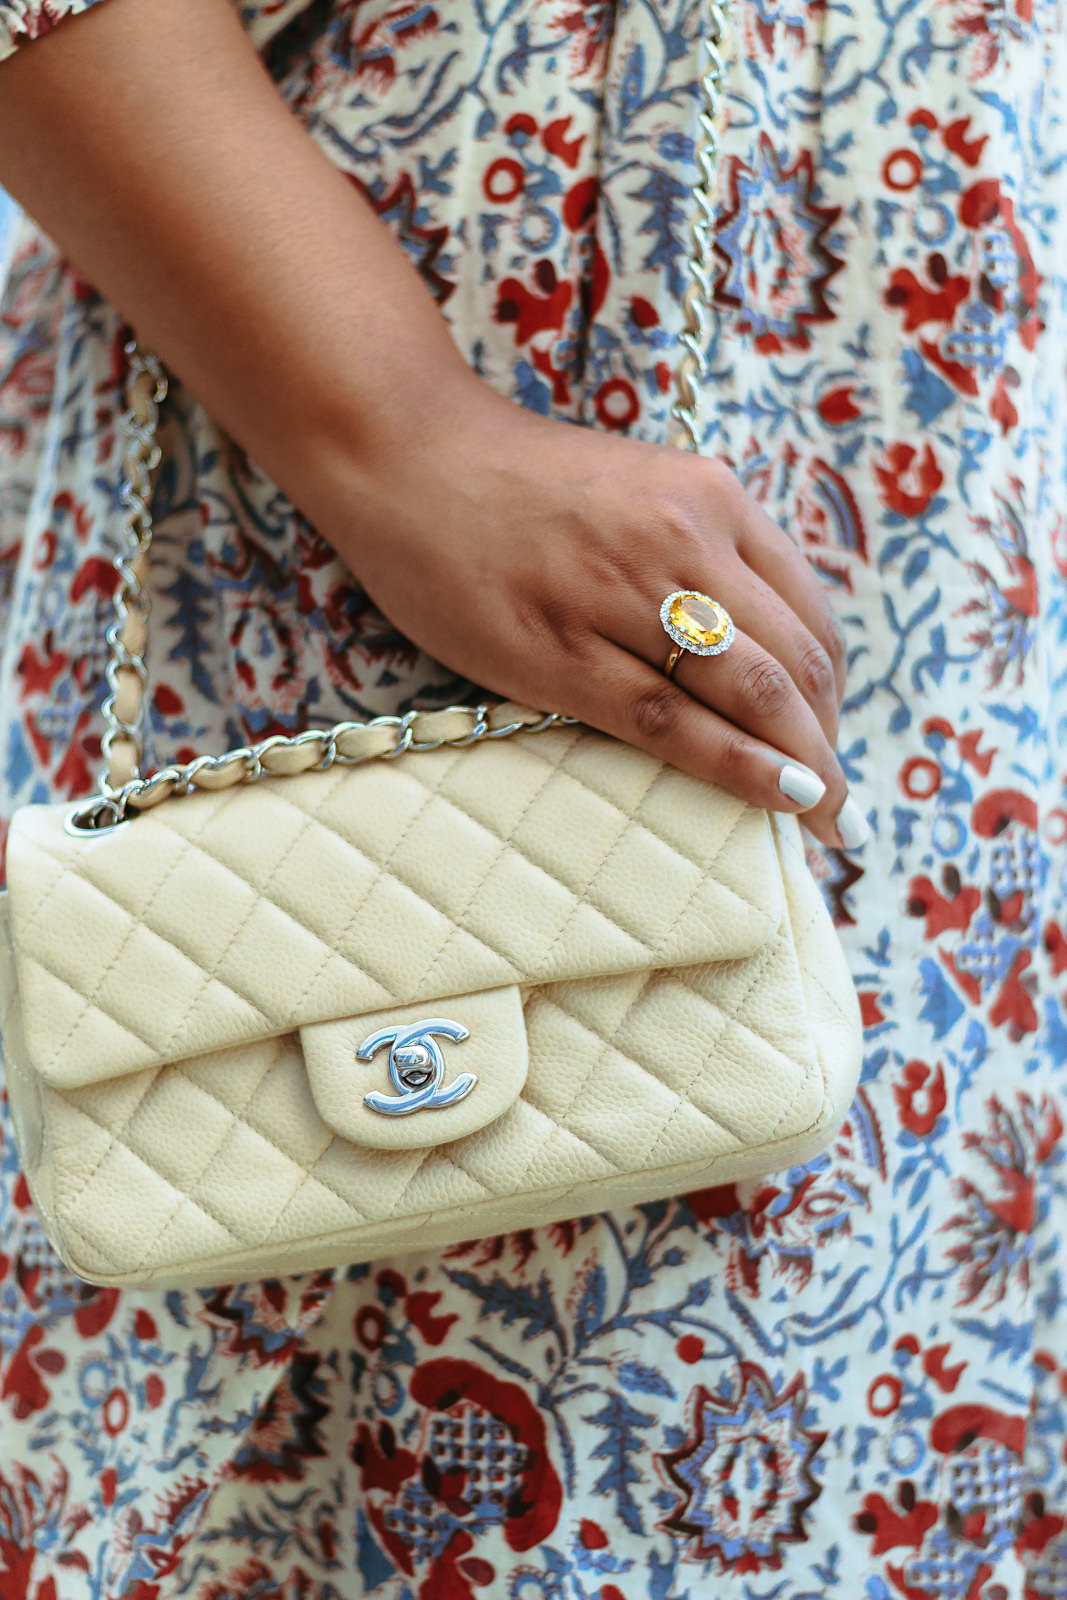 New Bag – Classic Chanel